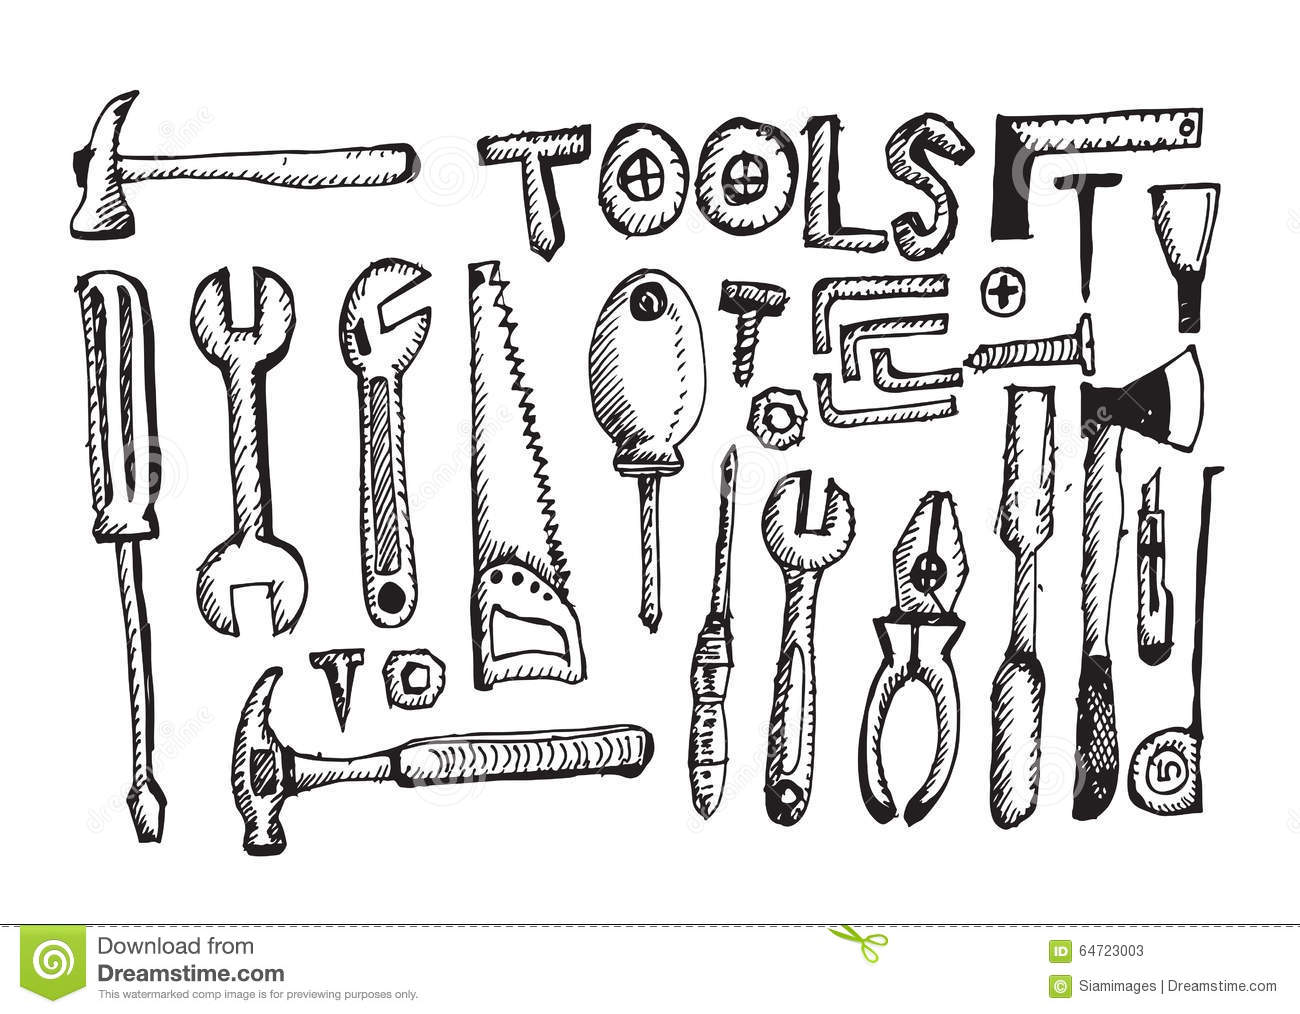 Tool Set Hand Draw stock vector. Illustration of doodle - 64723003